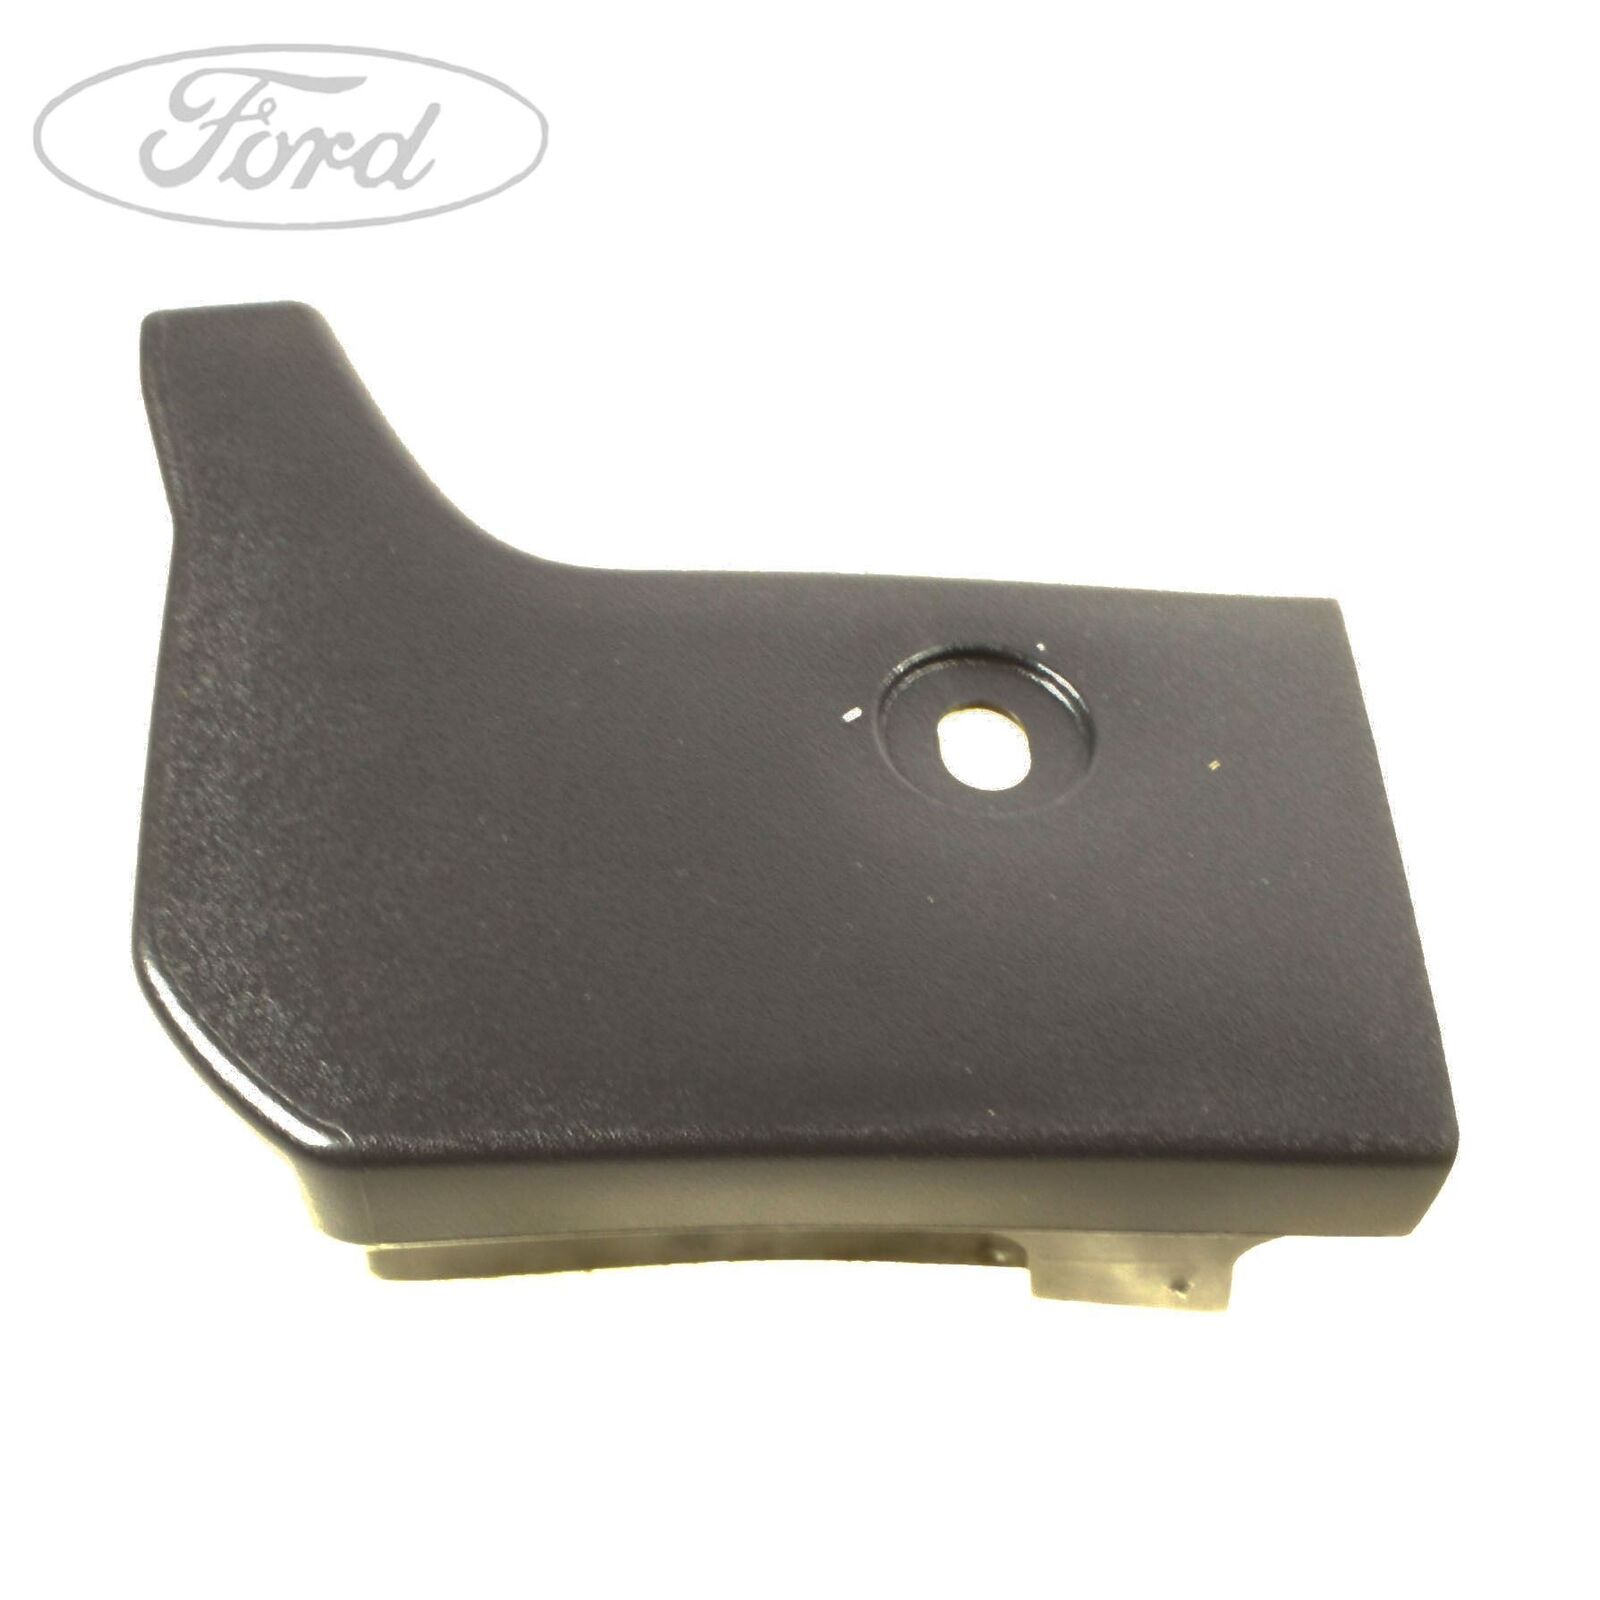 Genuine Ford Fiesta Mk7 O S Side Skirt End Cap 1771885 1124 Fuse Box Diagram 1 Of 4free Shipping